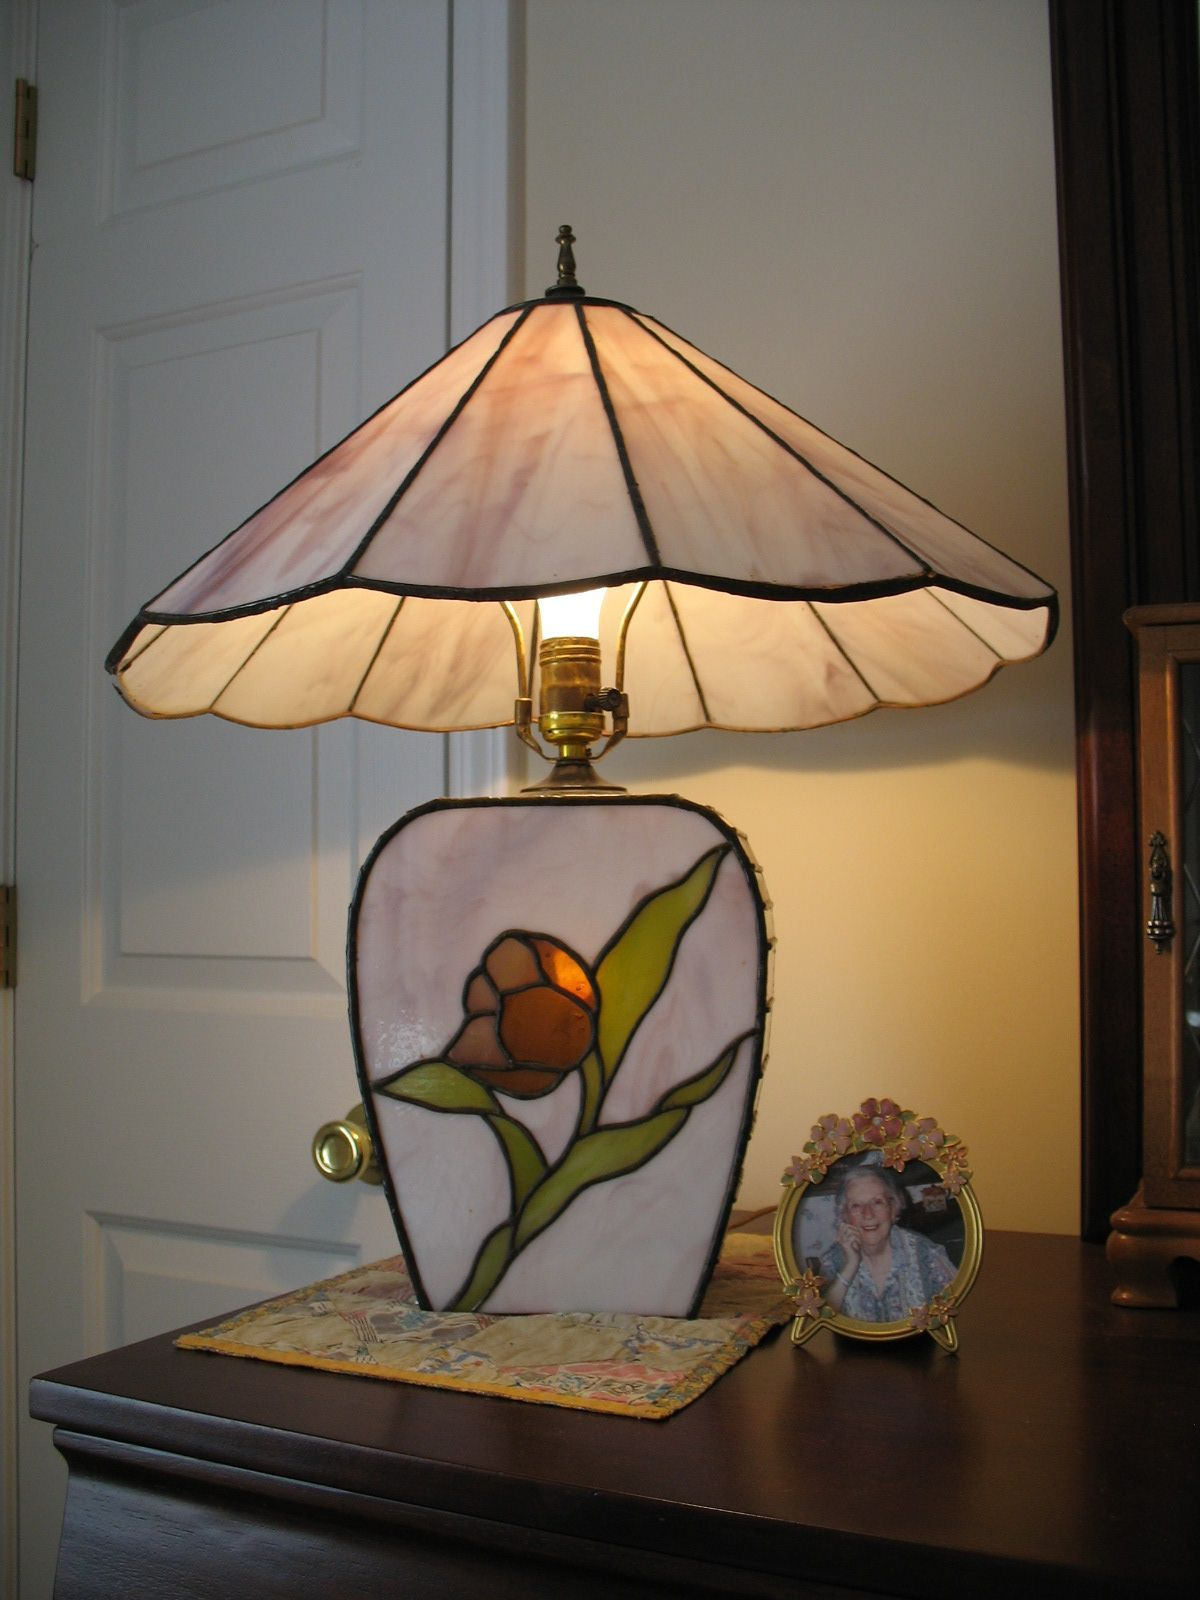 3 Interested Cool Ideas Lamp Shades Drum Diy Chandelier Country Lamp Shades Spaces Lamp Shad Stained Glass Lighting Glass Lamp Shade Stained Glass Lamp Shades